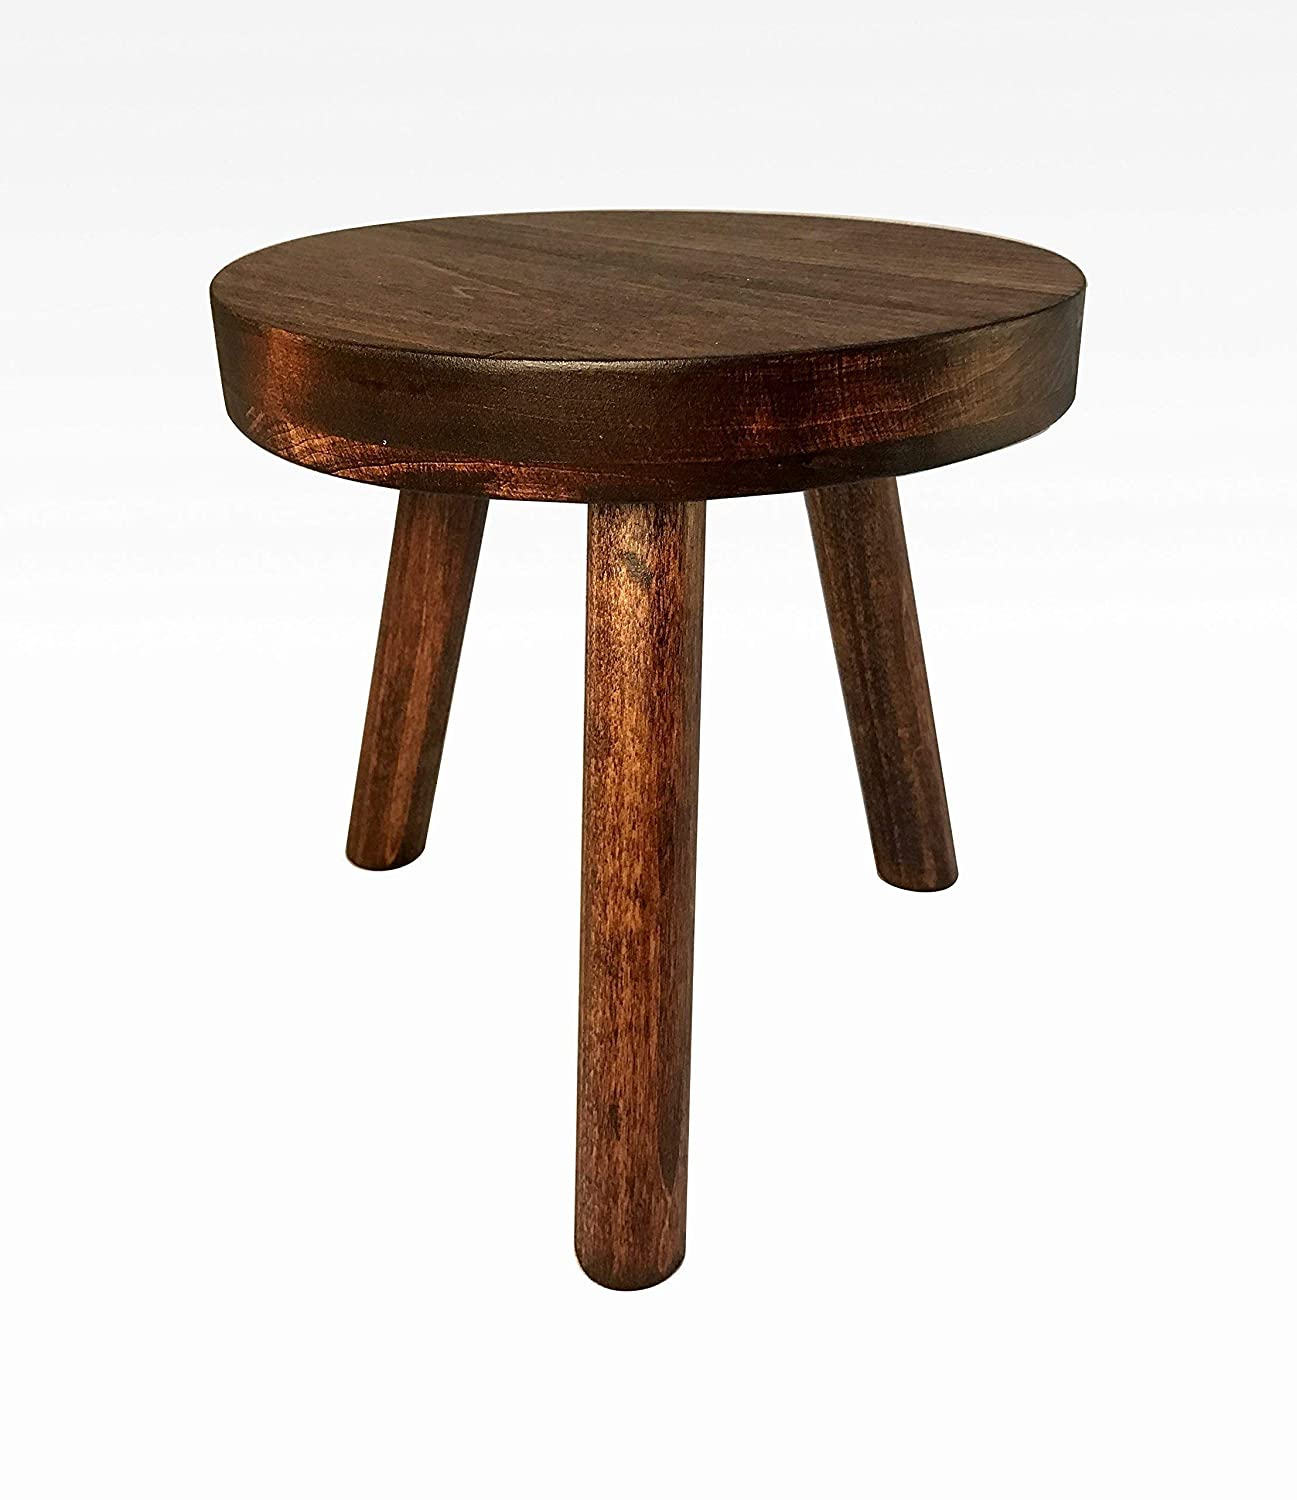 Modern Plant Stand Three Leg Stool by CW Furniture in Mahogany Indoor Wood  Flower Pot Base Display Holder Solid Wooden Kids Chair Table Simple ...